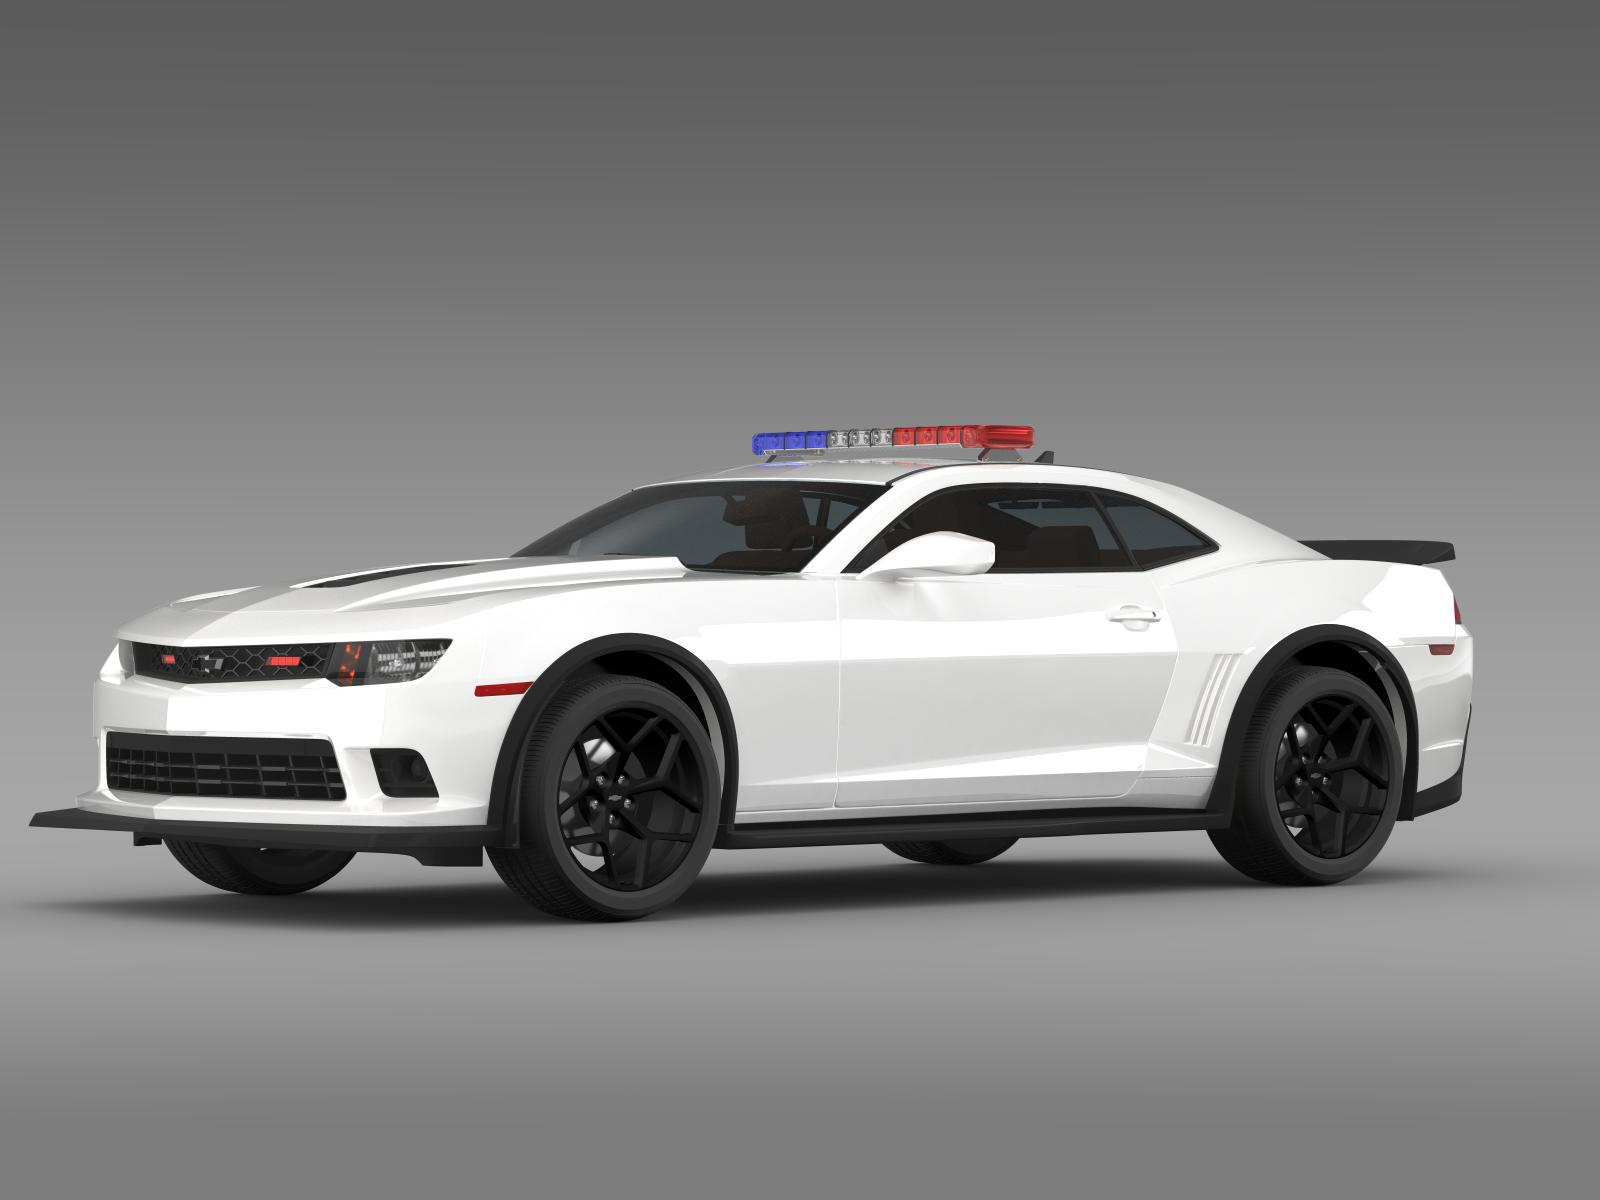 chevrolet camaro z28 police 2015 3d model buy chevrolet camaro z28 police 2015 3d model. Black Bedroom Furniture Sets. Home Design Ideas